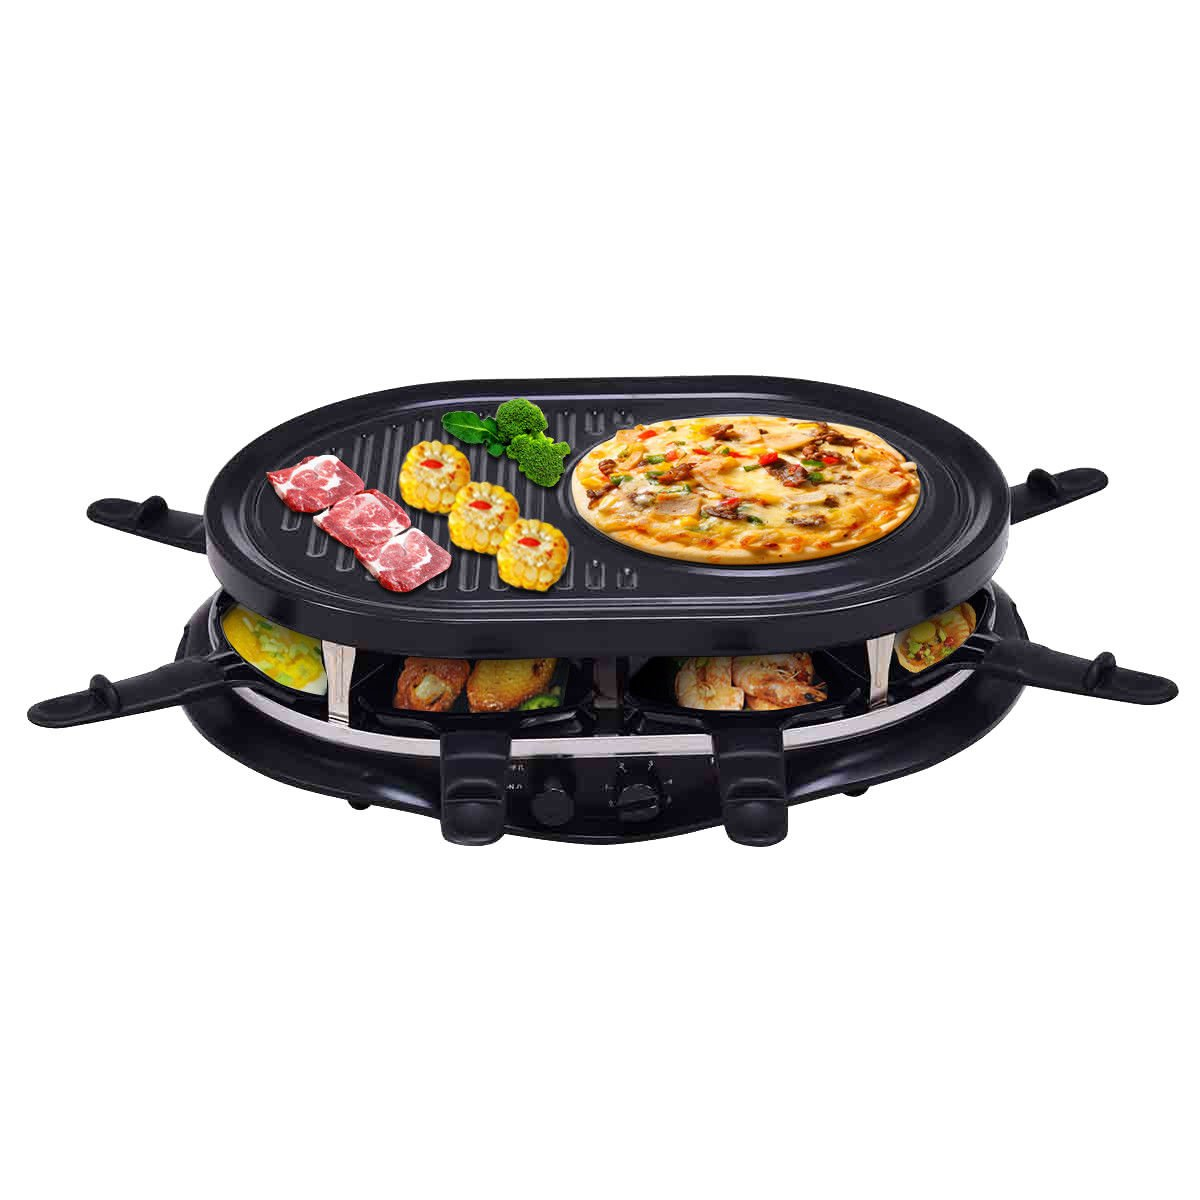 New 1200W Black Electric Raclette Grill Oval Party Cooktop Non Stick